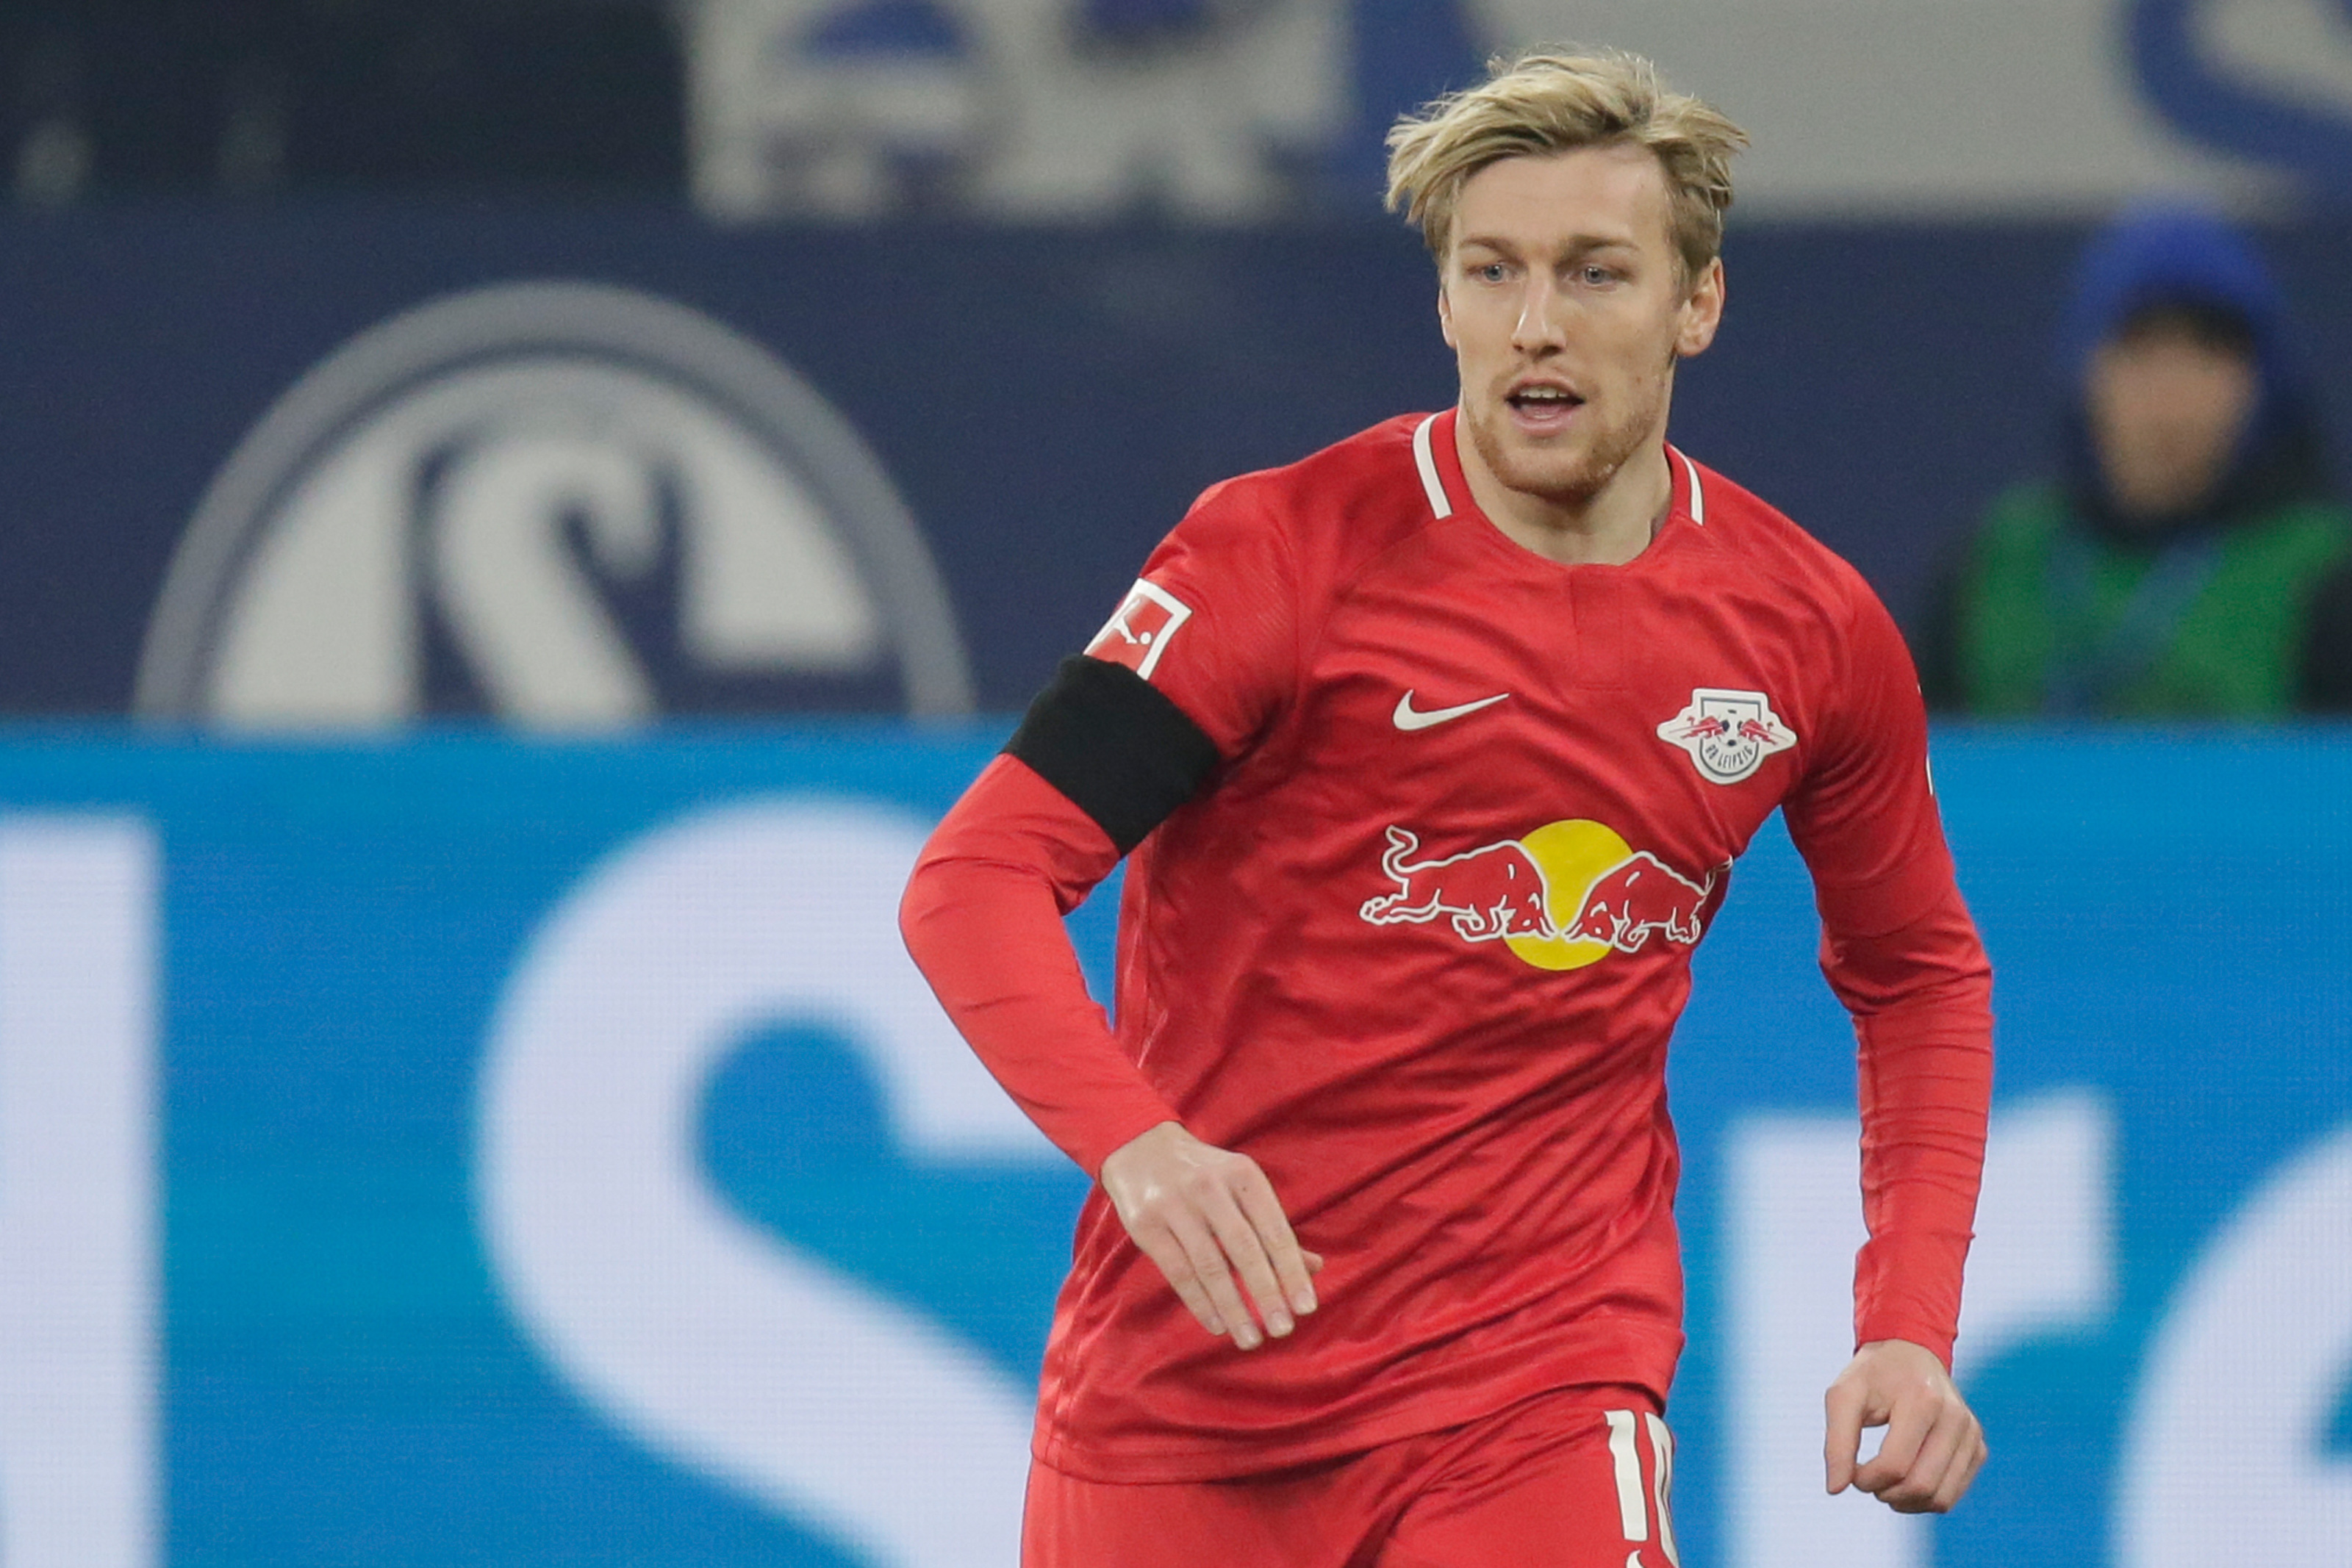 Tottenham could offer RB Leipzig star a lifeline